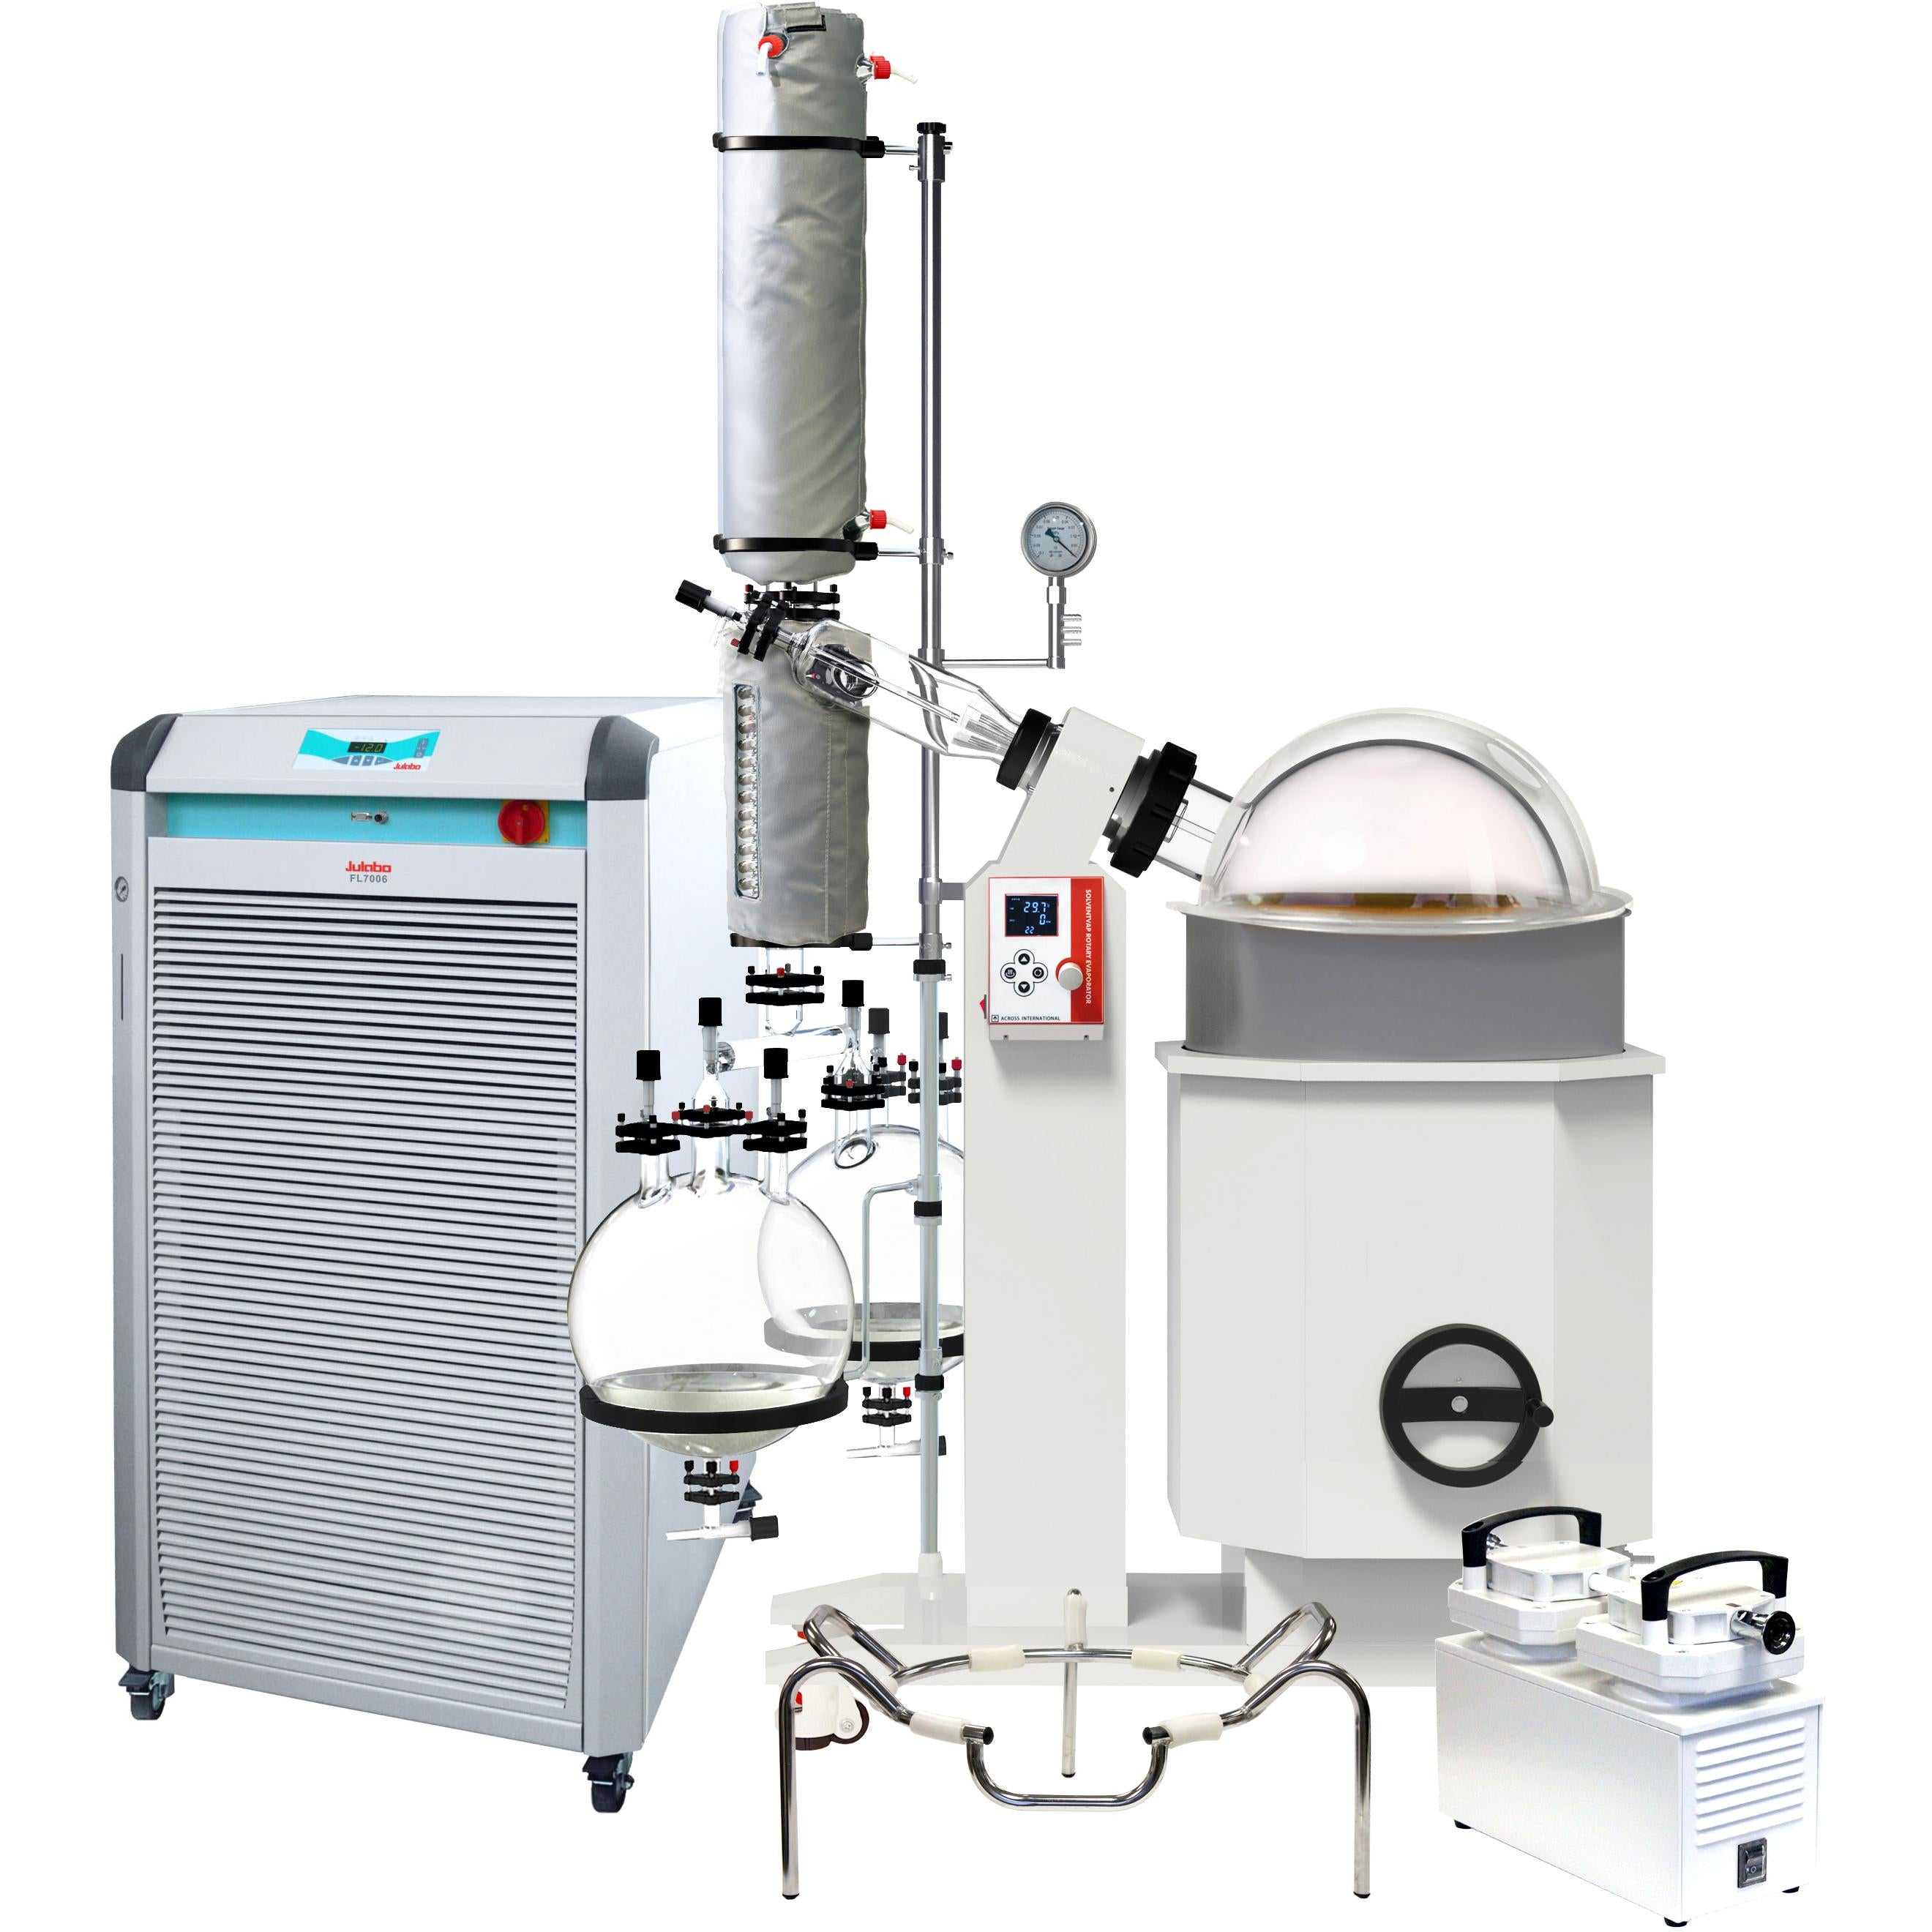 Ai SolventVap 50L Rotary Evaporator, Turnkey, with Julabo Chiller and ULVAC Pump